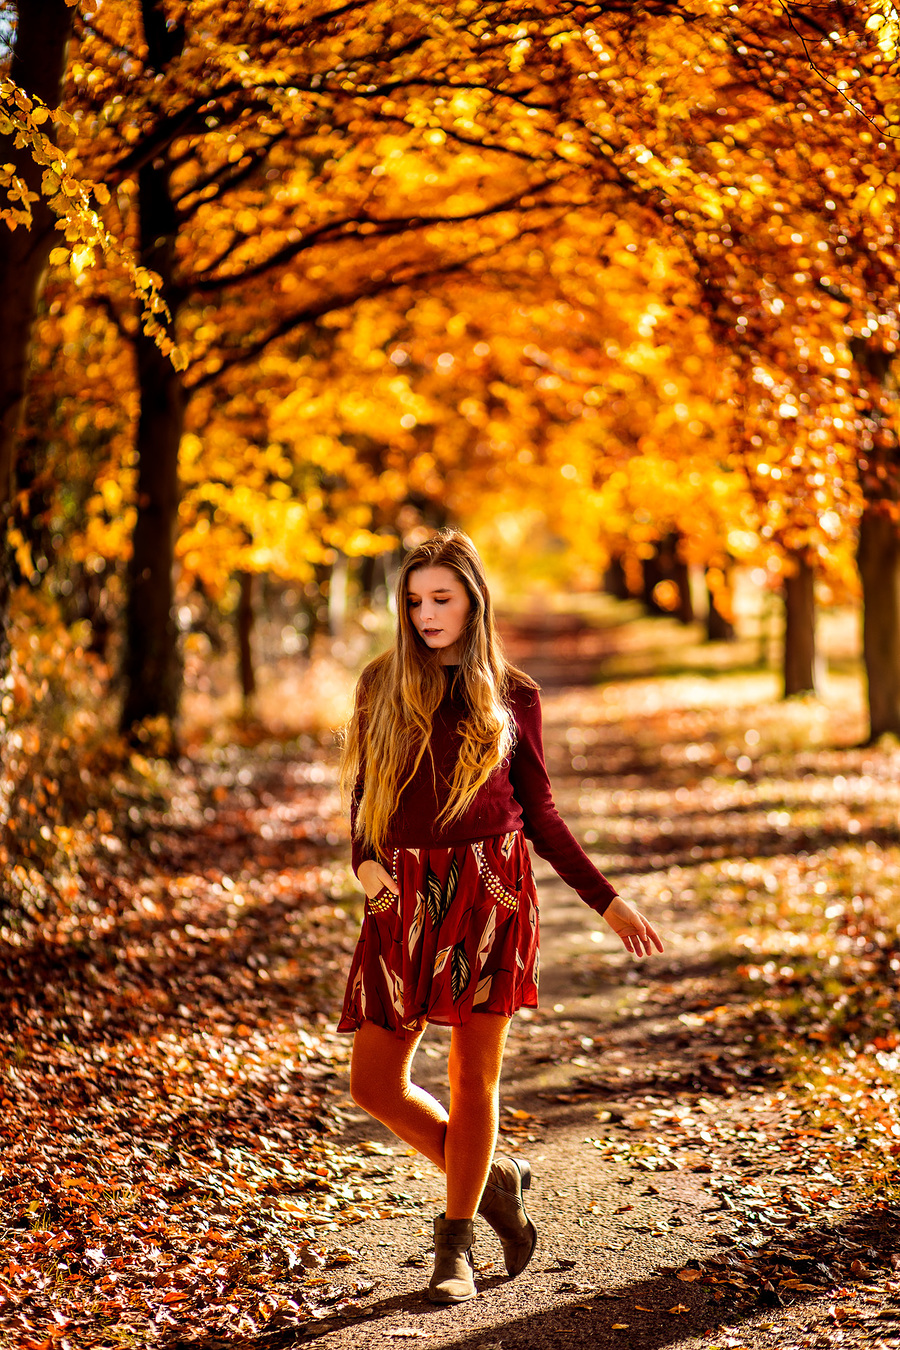 Fallen Leaves on the Ground / Photography by Raj K, Model Jade Lyon / Uploaded 9th October 2020 @ 05:37 PM